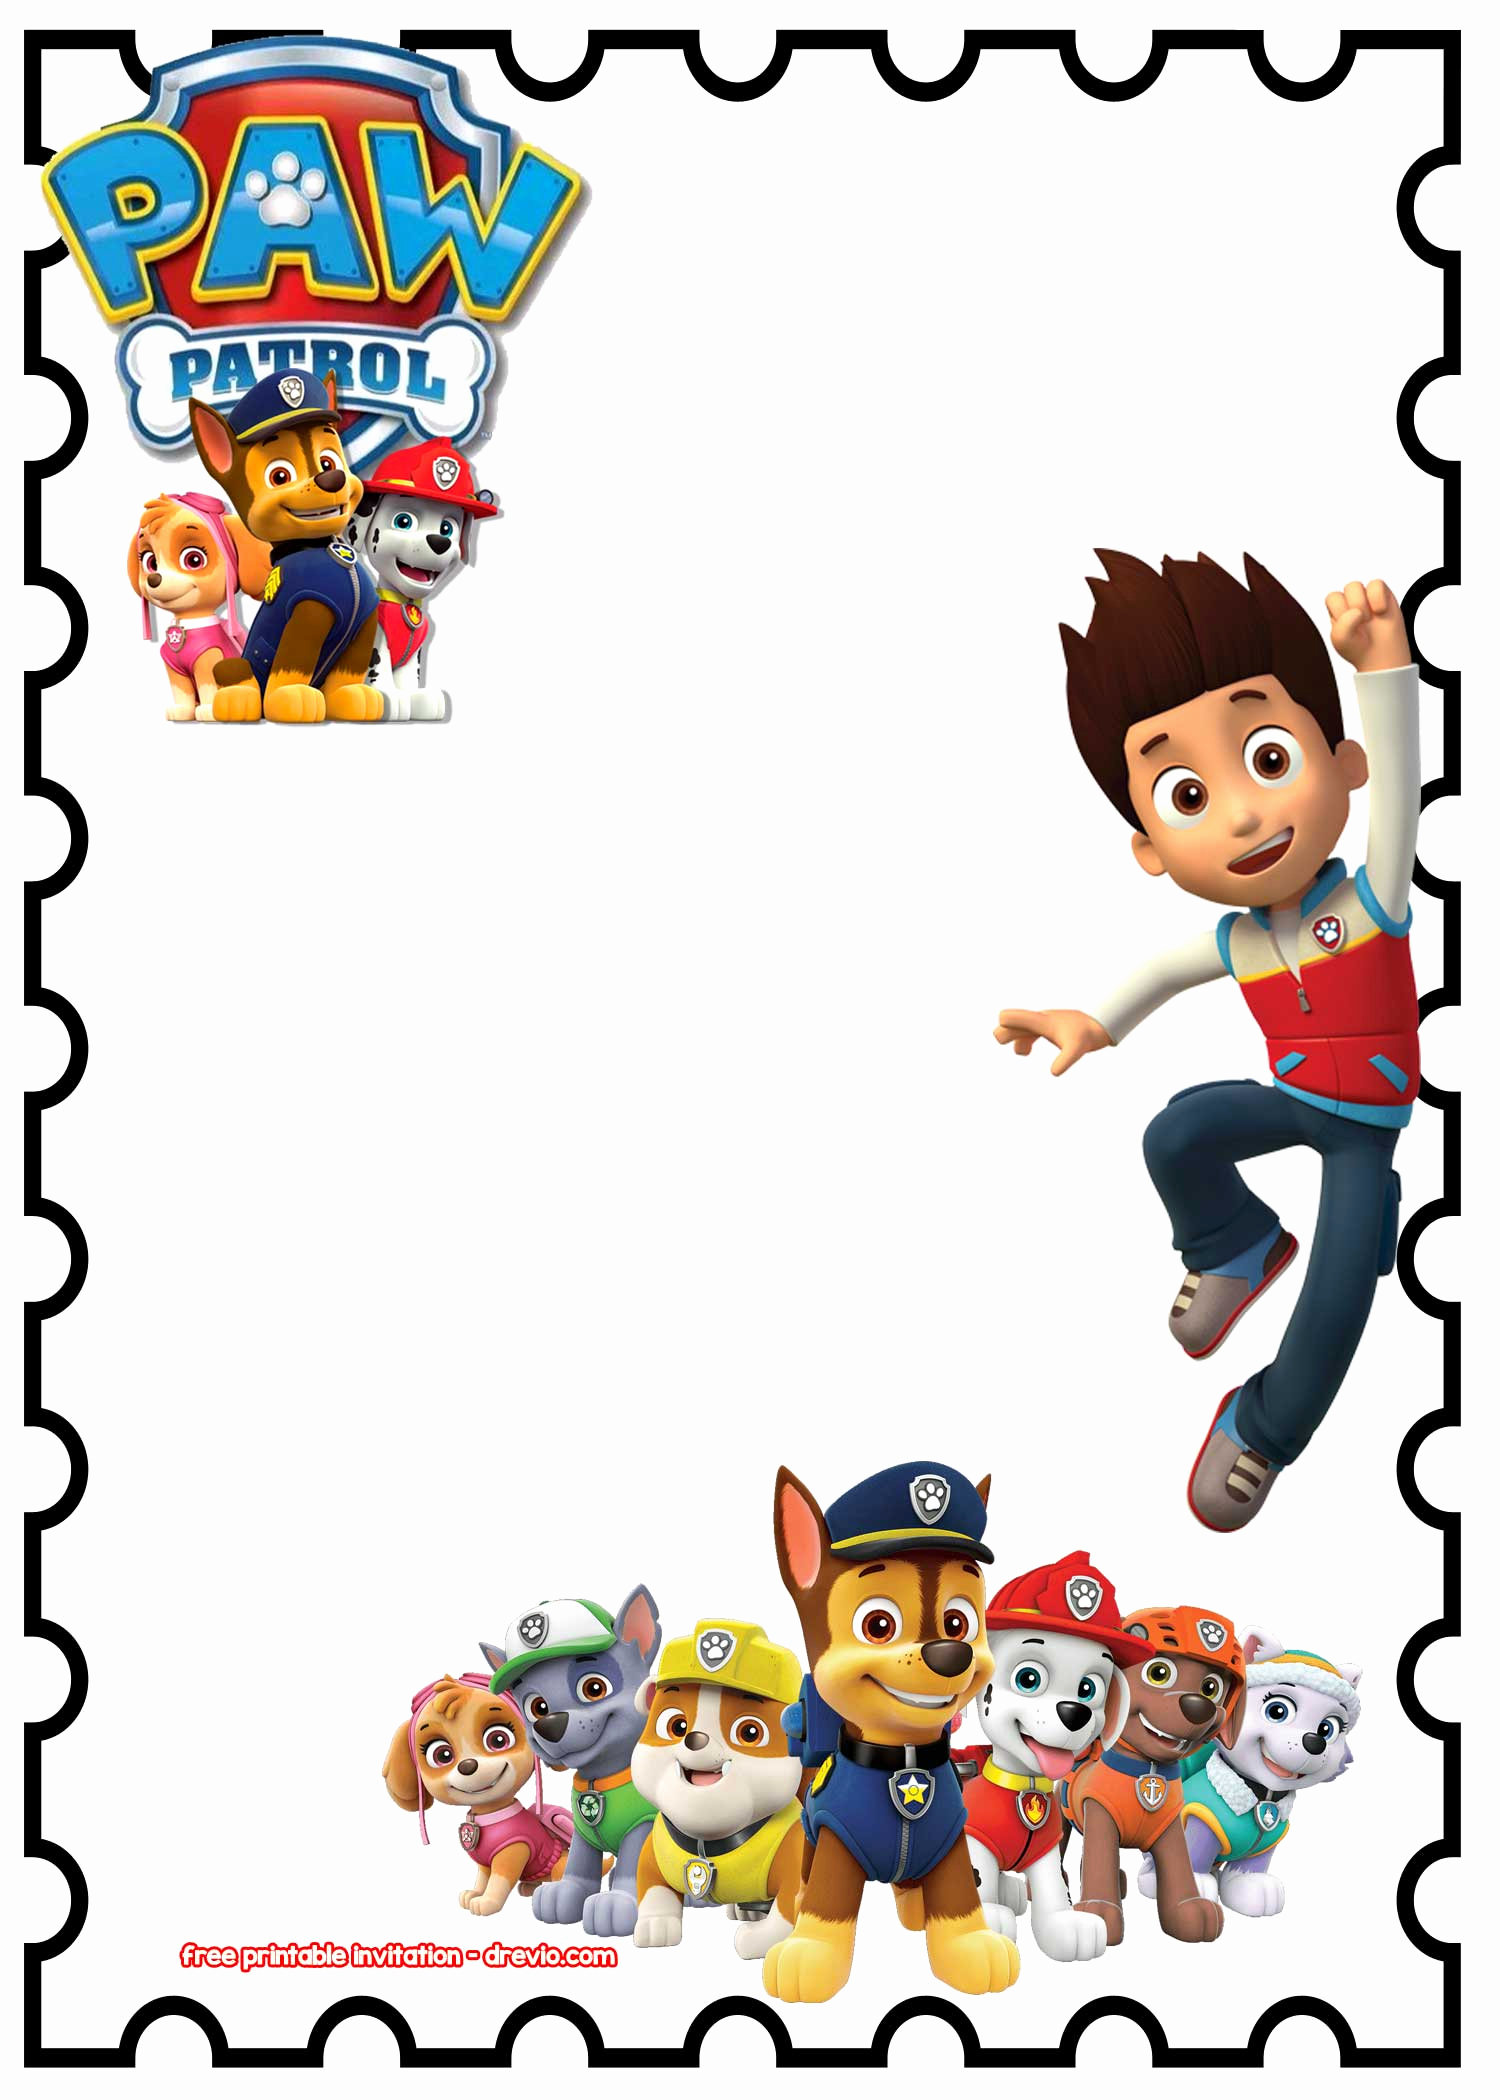 Paw Patrol Birthday Invitation Template Lovely Free Printable Paw Patrol Birthday Invitation Chalkboard